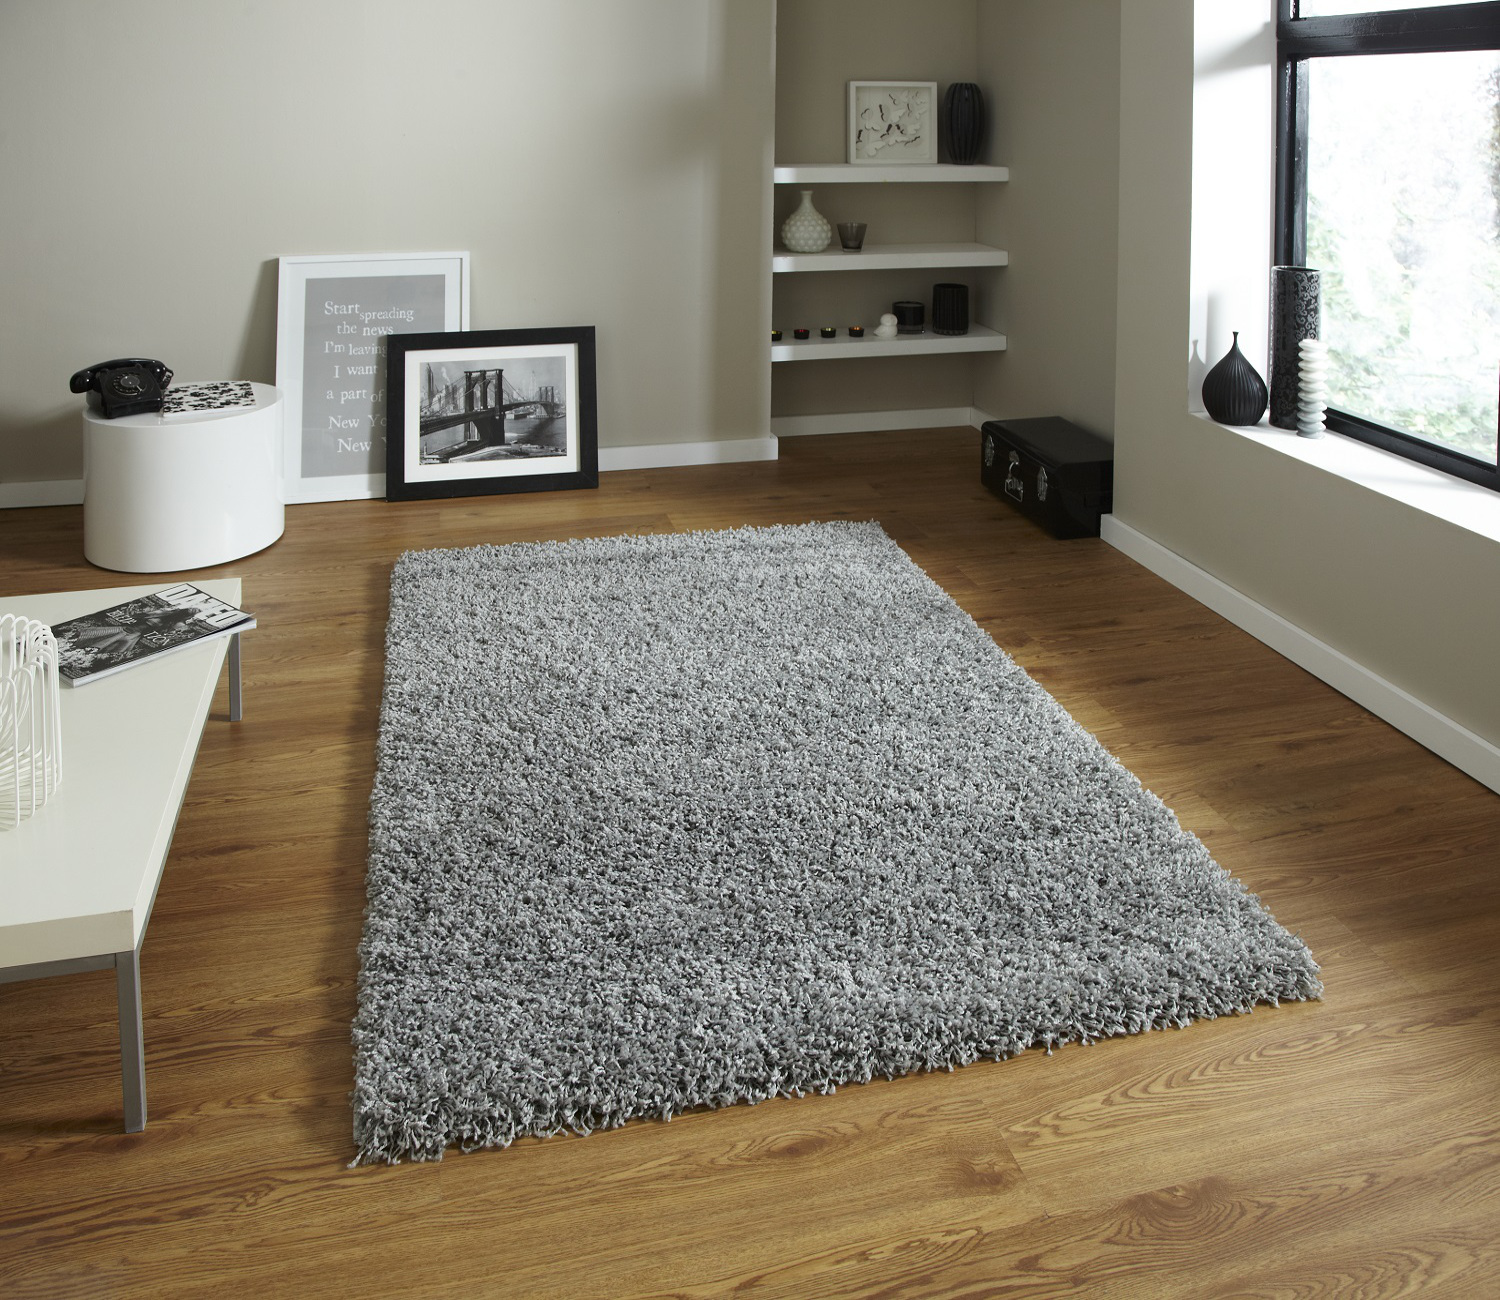 modern plain shaggy 5cm pile rug vista machine made large fluffy mat home decor ebay. Black Bedroom Furniture Sets. Home Design Ideas